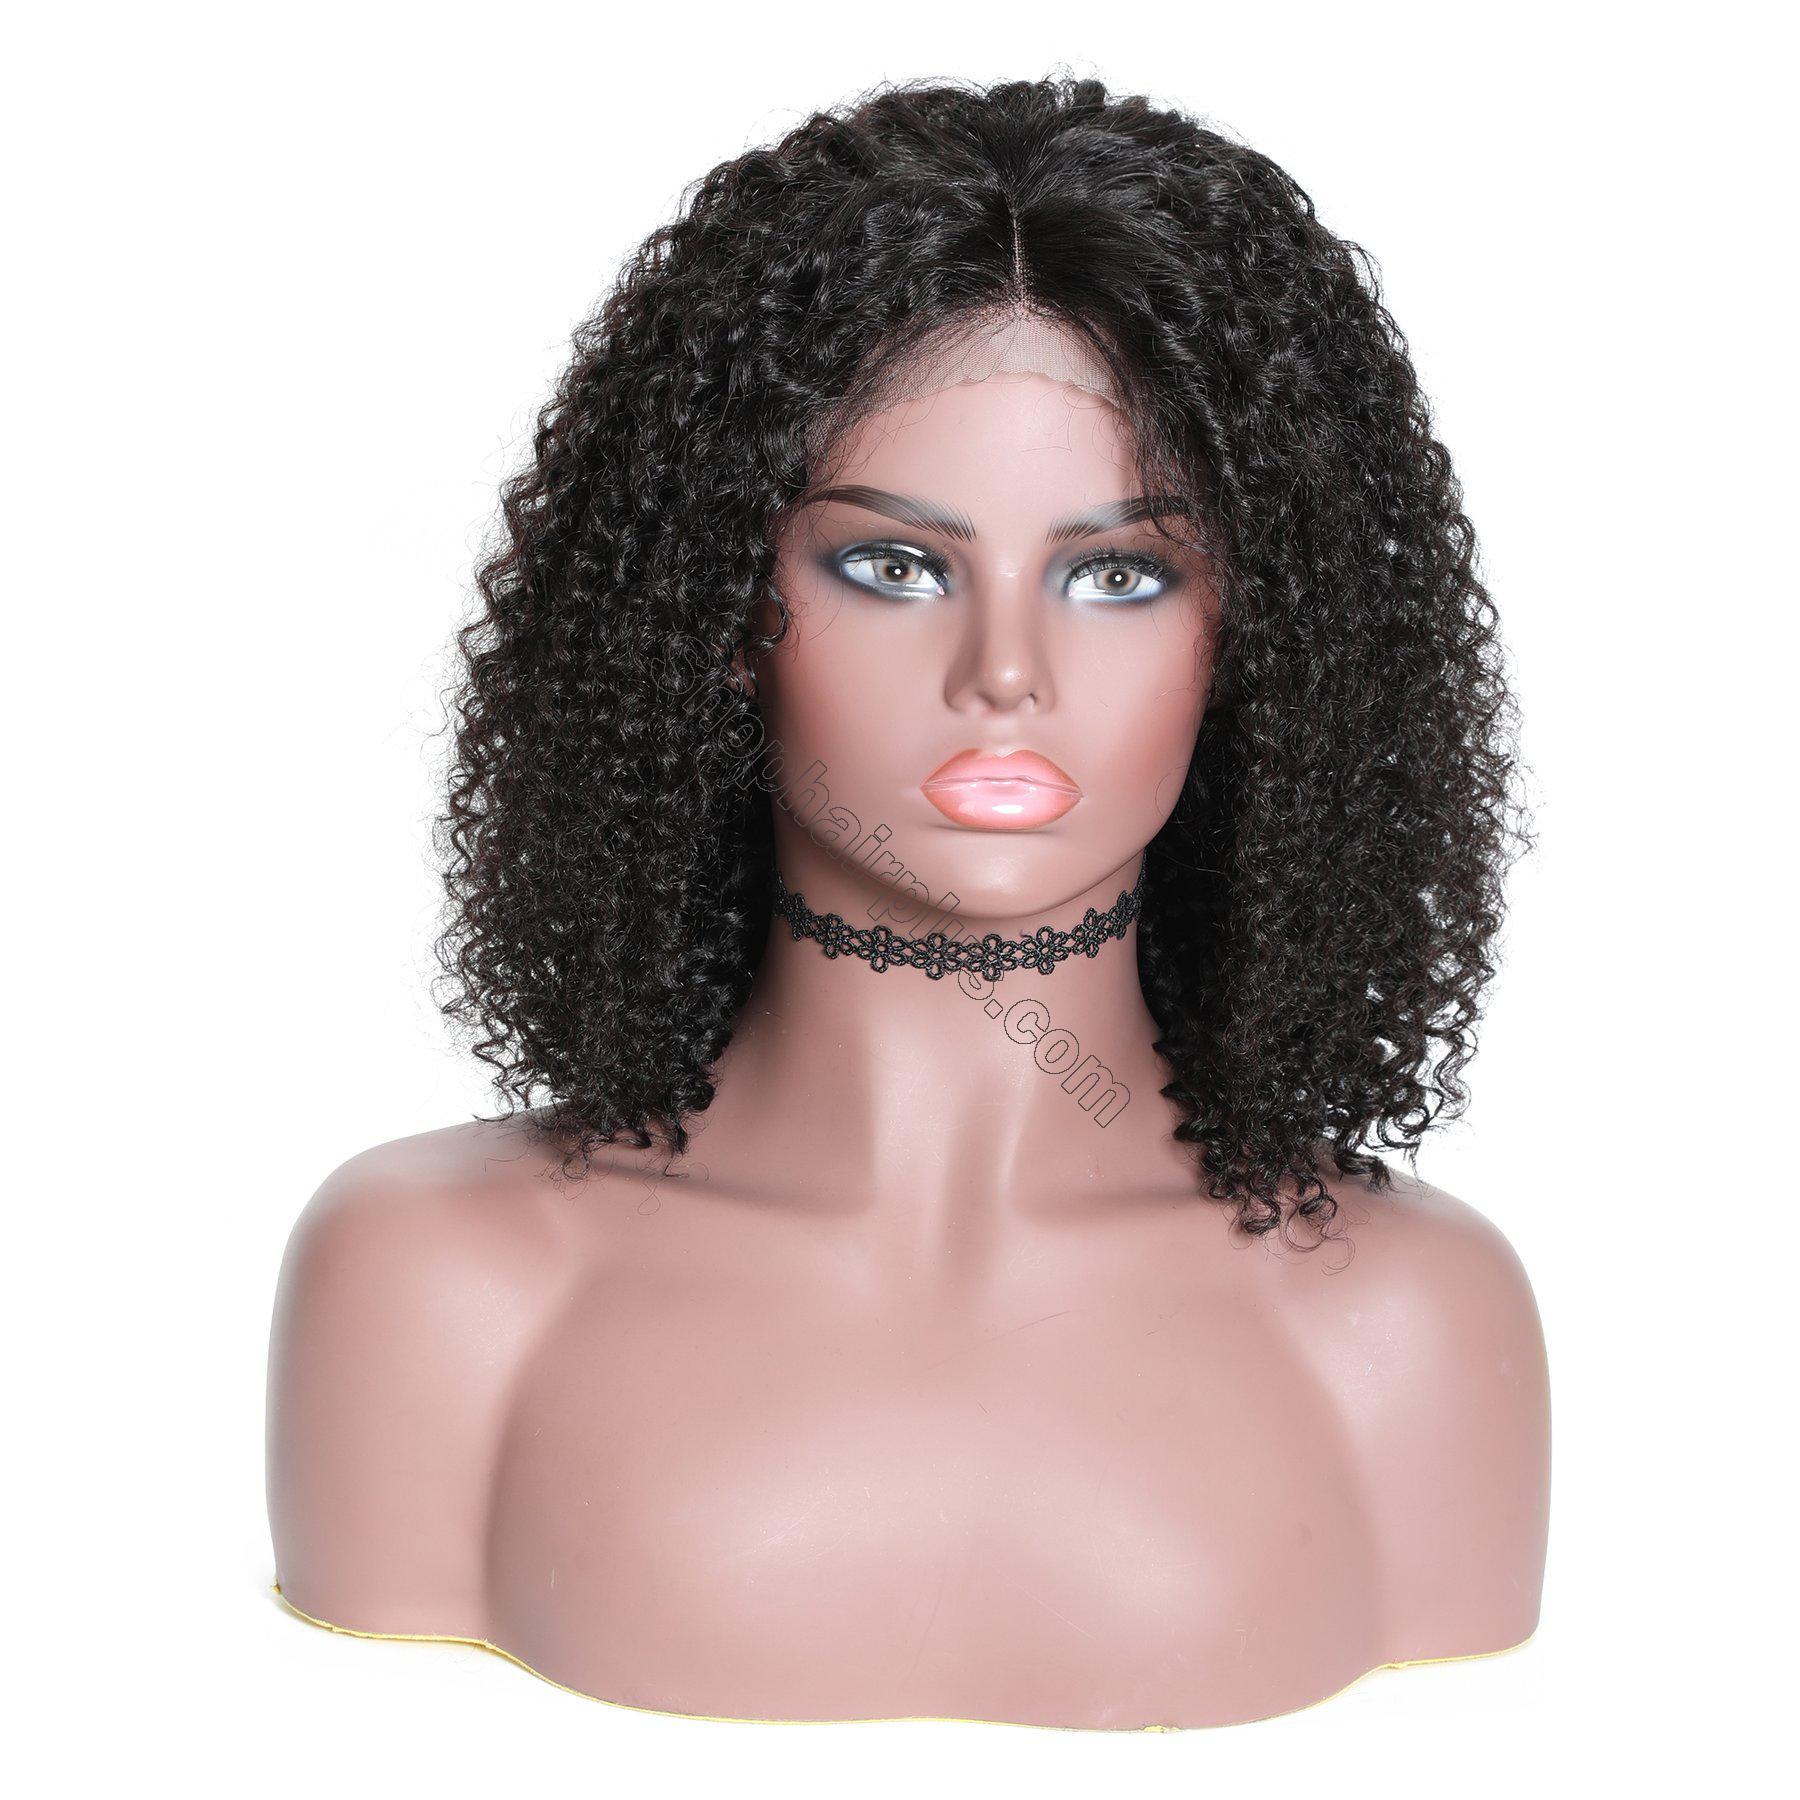 9A 13*4 Short Bob Curly Hair Lace Front Wig On Deals, 150%/180% Densit 2